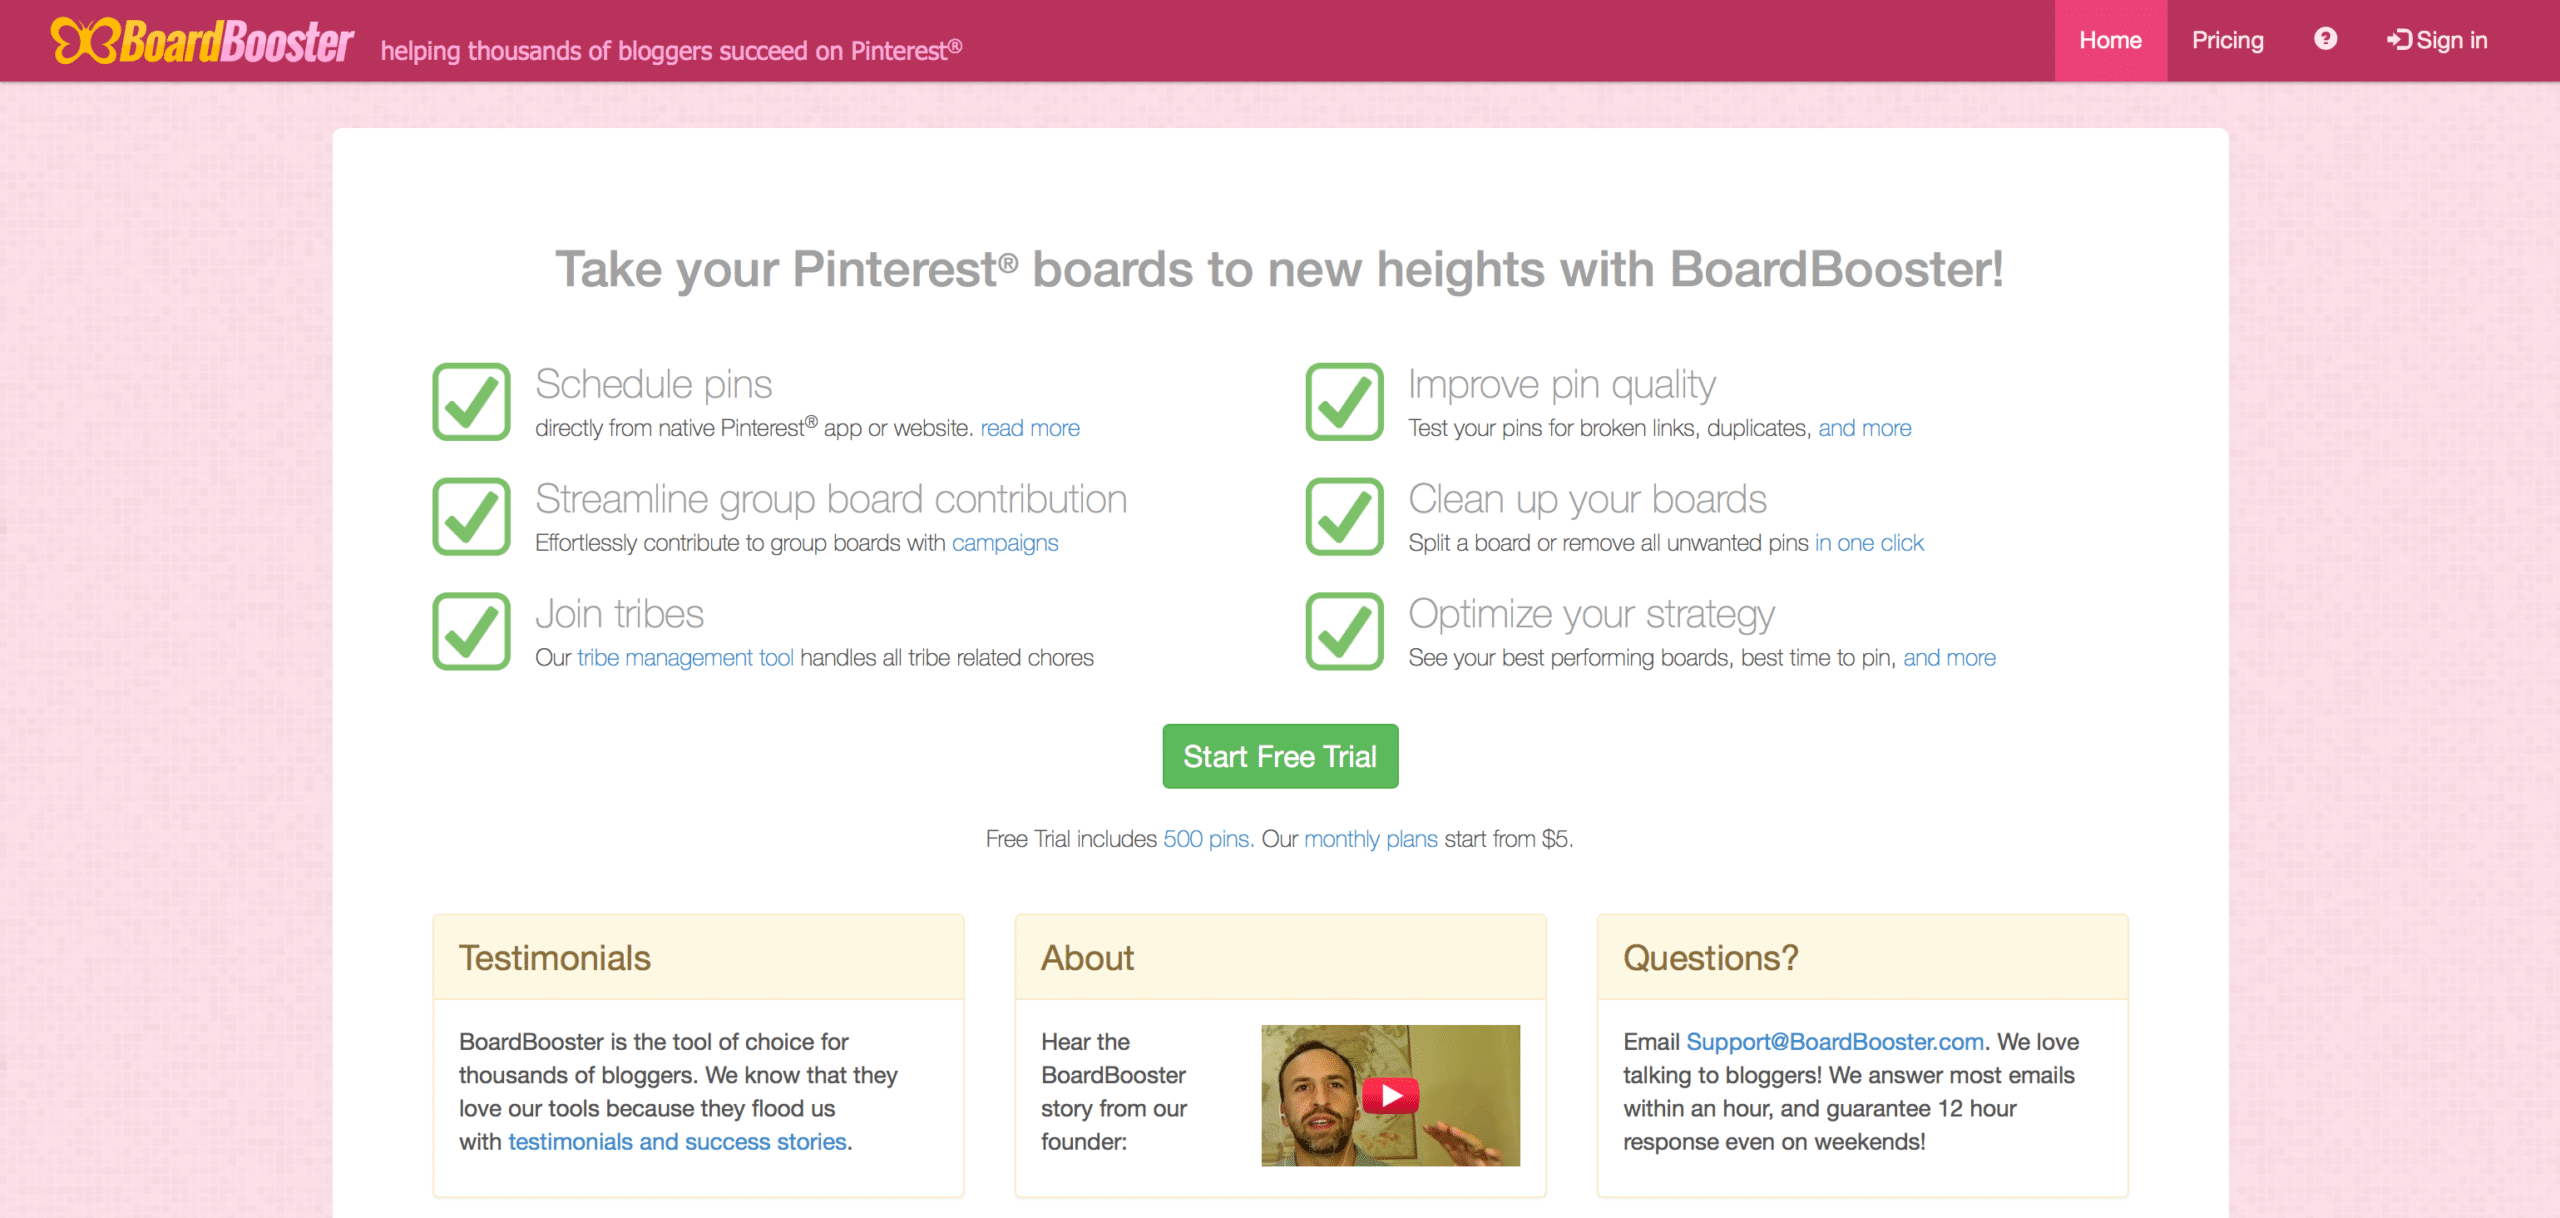 Take your Pinterest boards to new heights